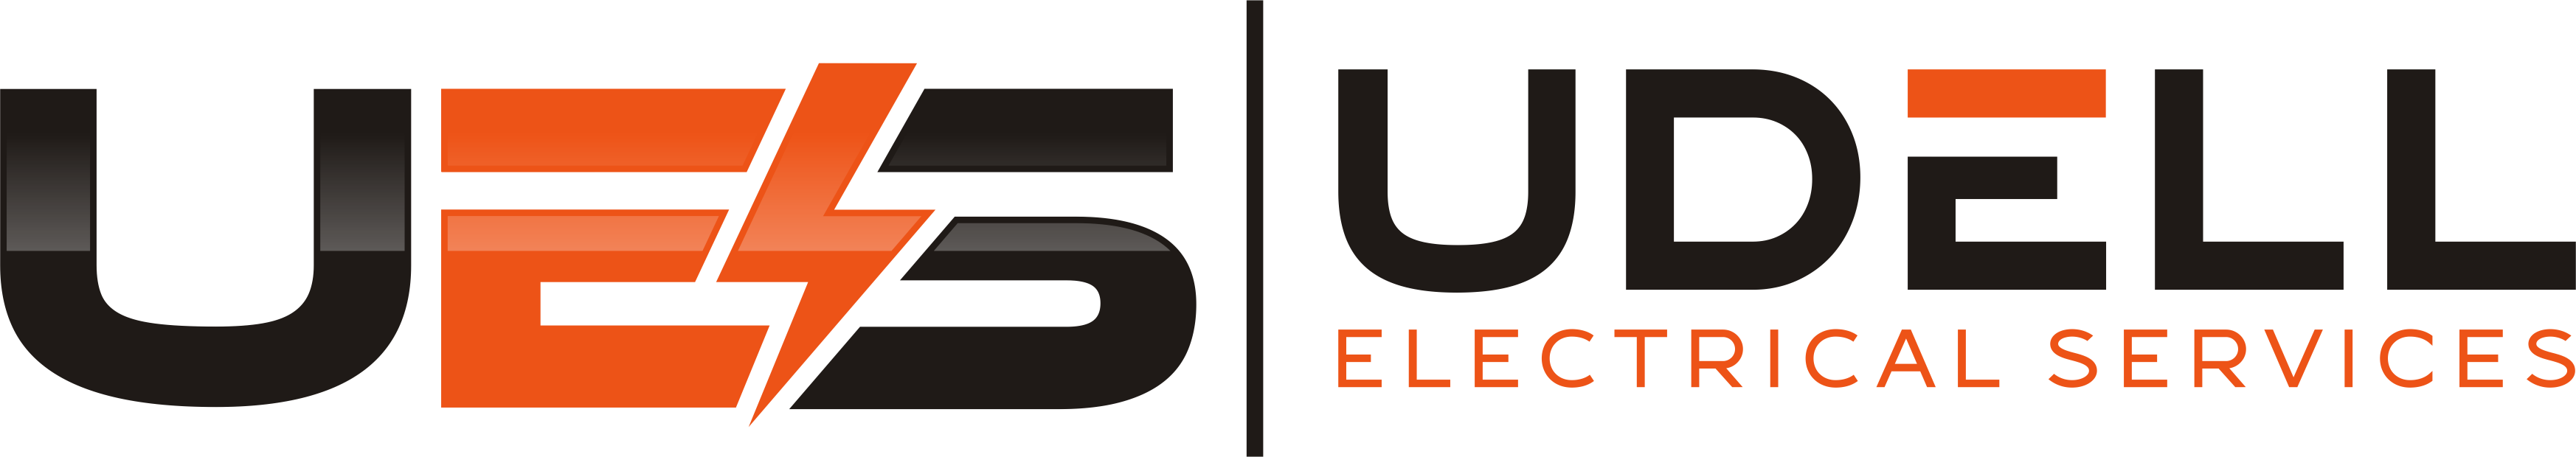 Udell Electrical Services Verified Logo